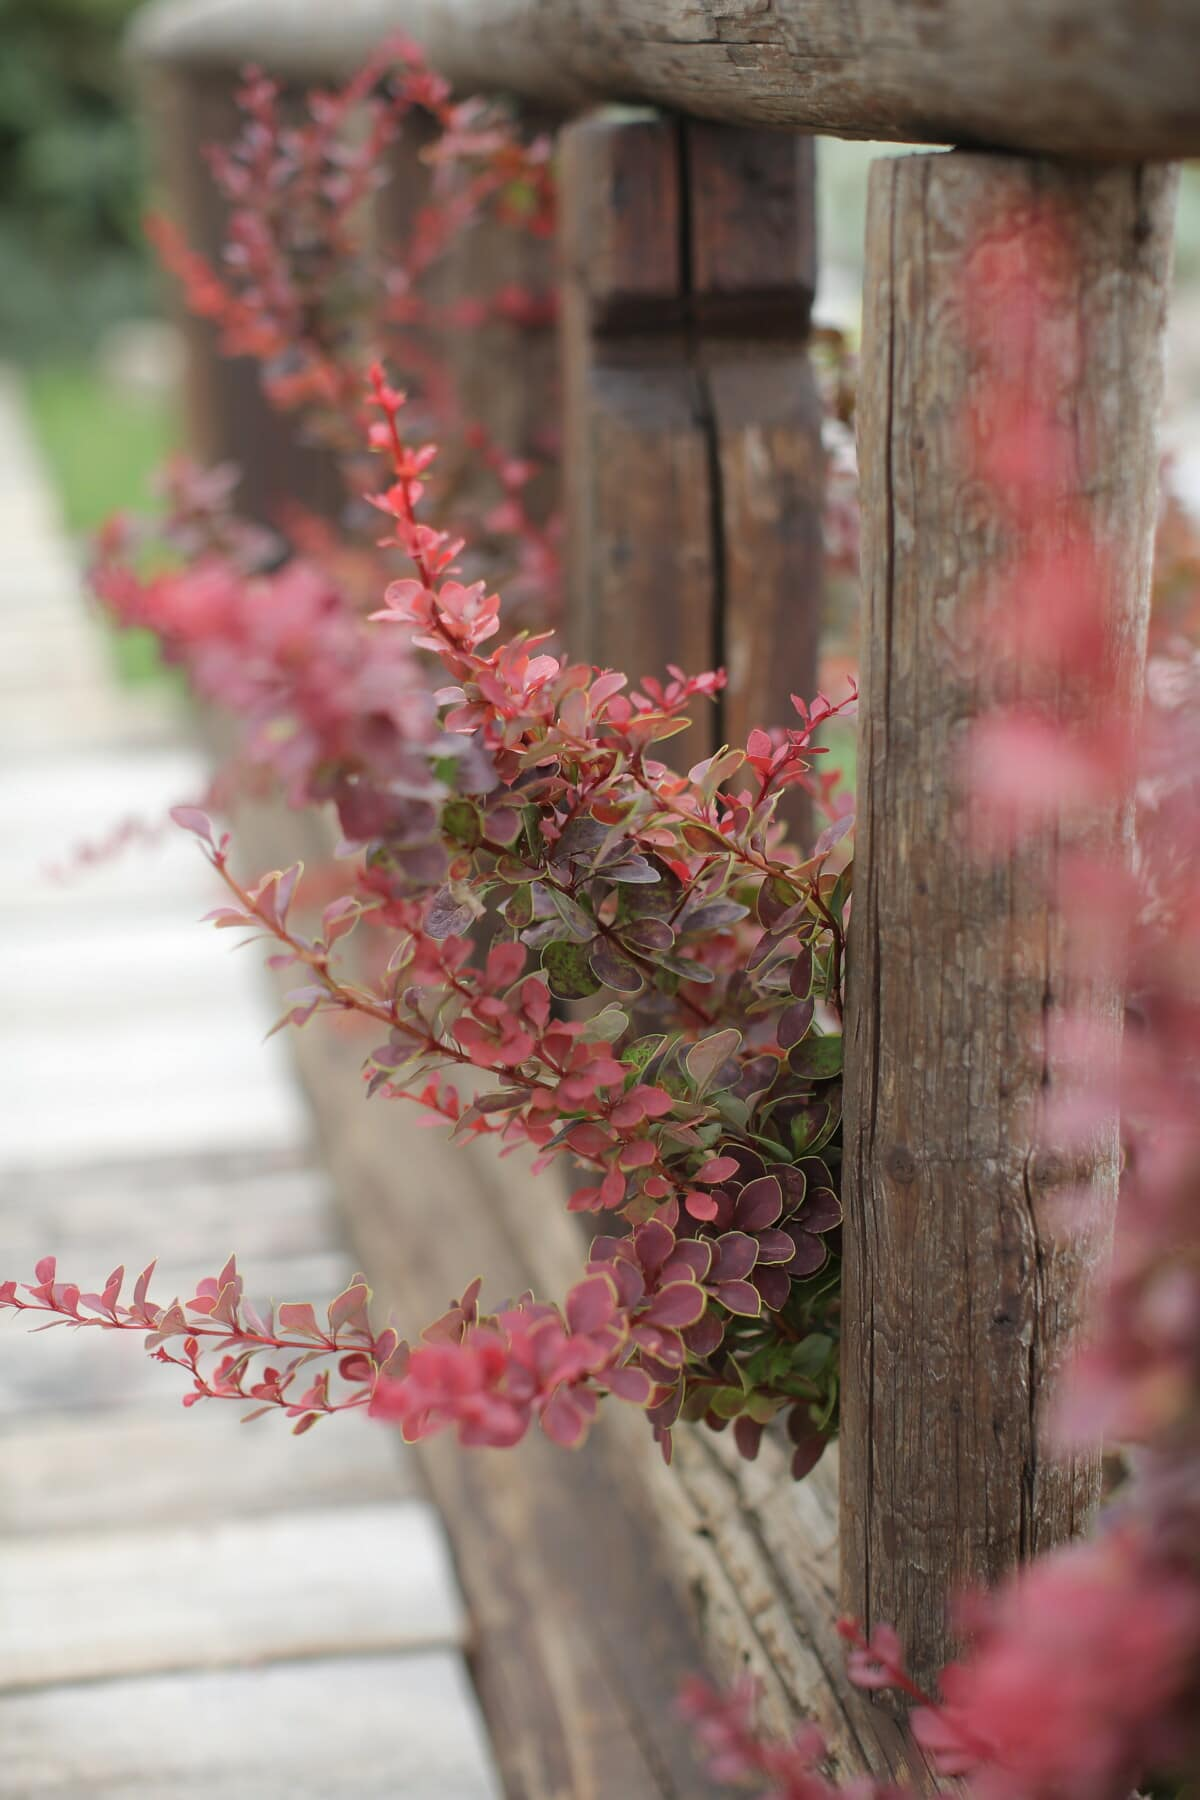 flower garden, branch, fence, nature, plant, tree, leaf, shrub, flower, flora